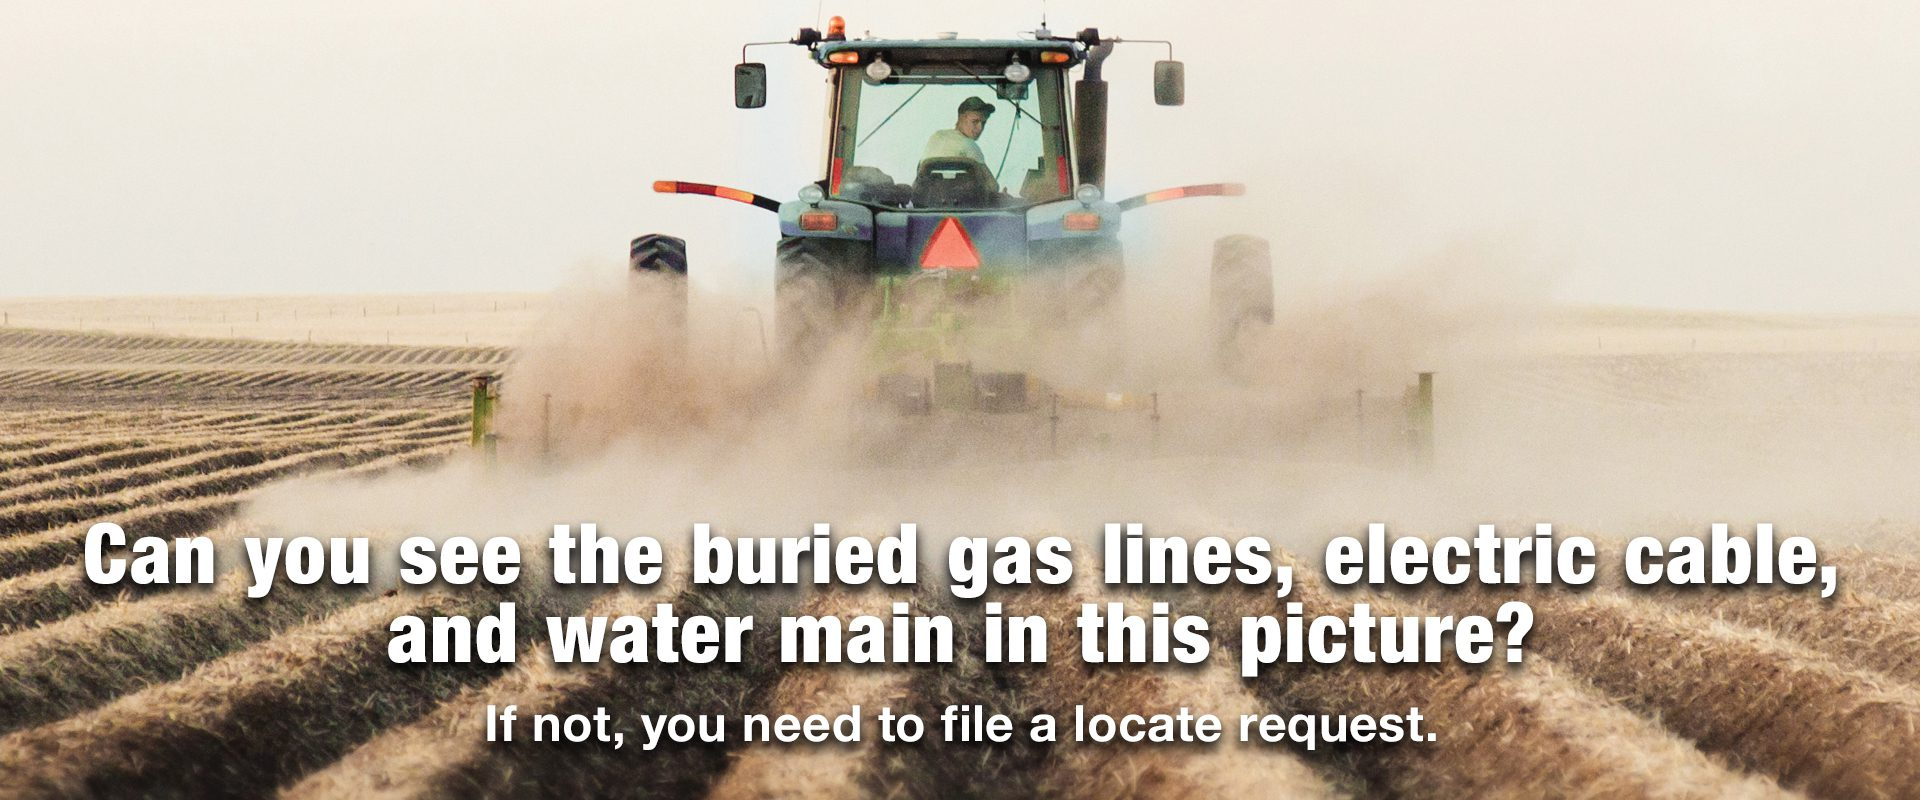 Can you see the buried gas lines, electric cable, and water main in this picture? If not, you need to file a locate request.